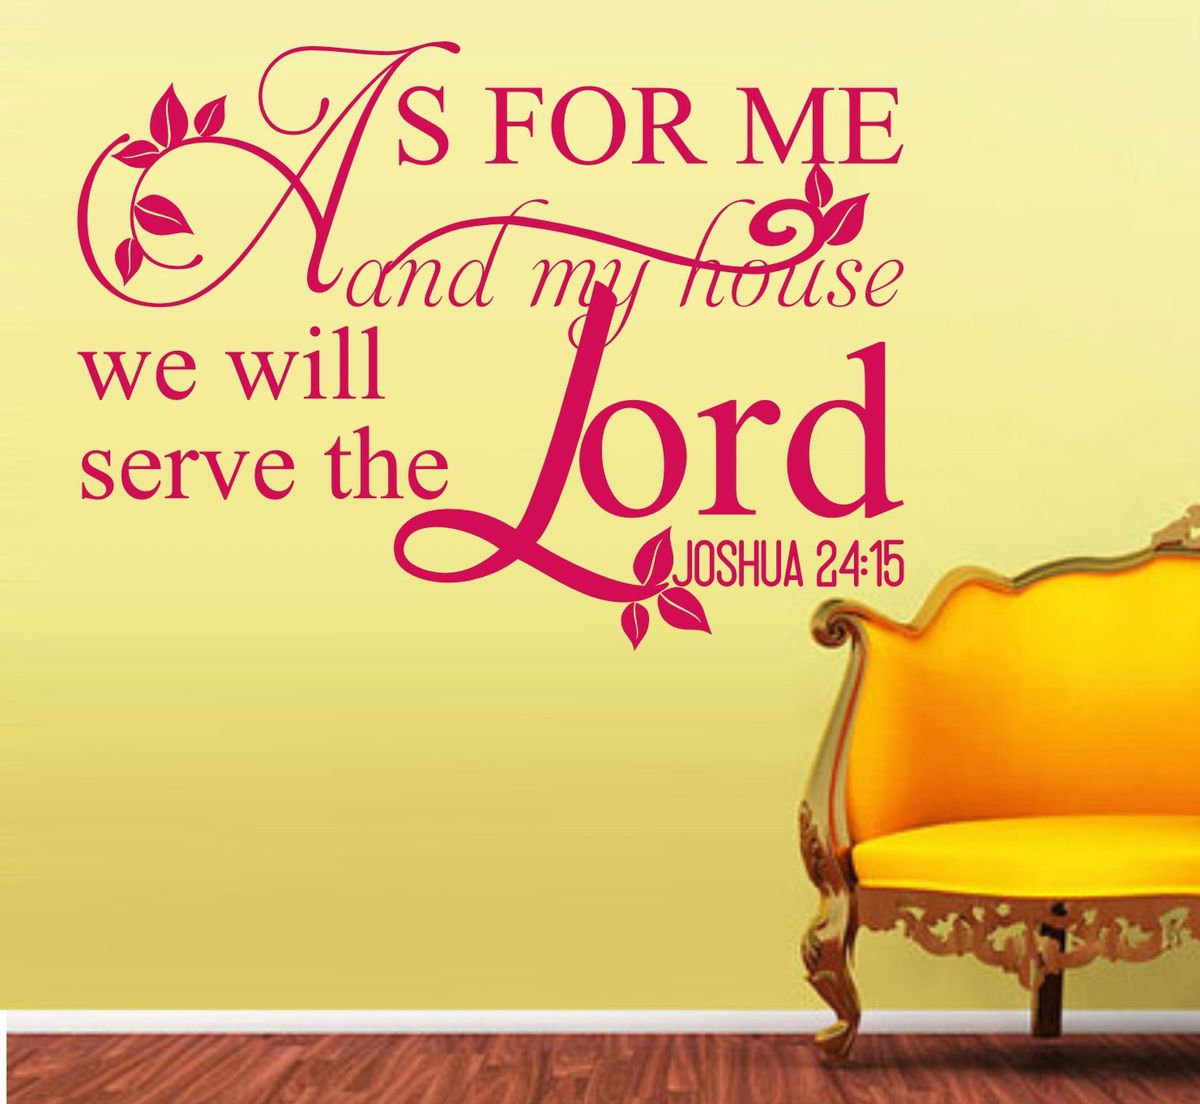 Vinyl Lady Decals Josh 24:15 As For Me And My House We Will Serve ...